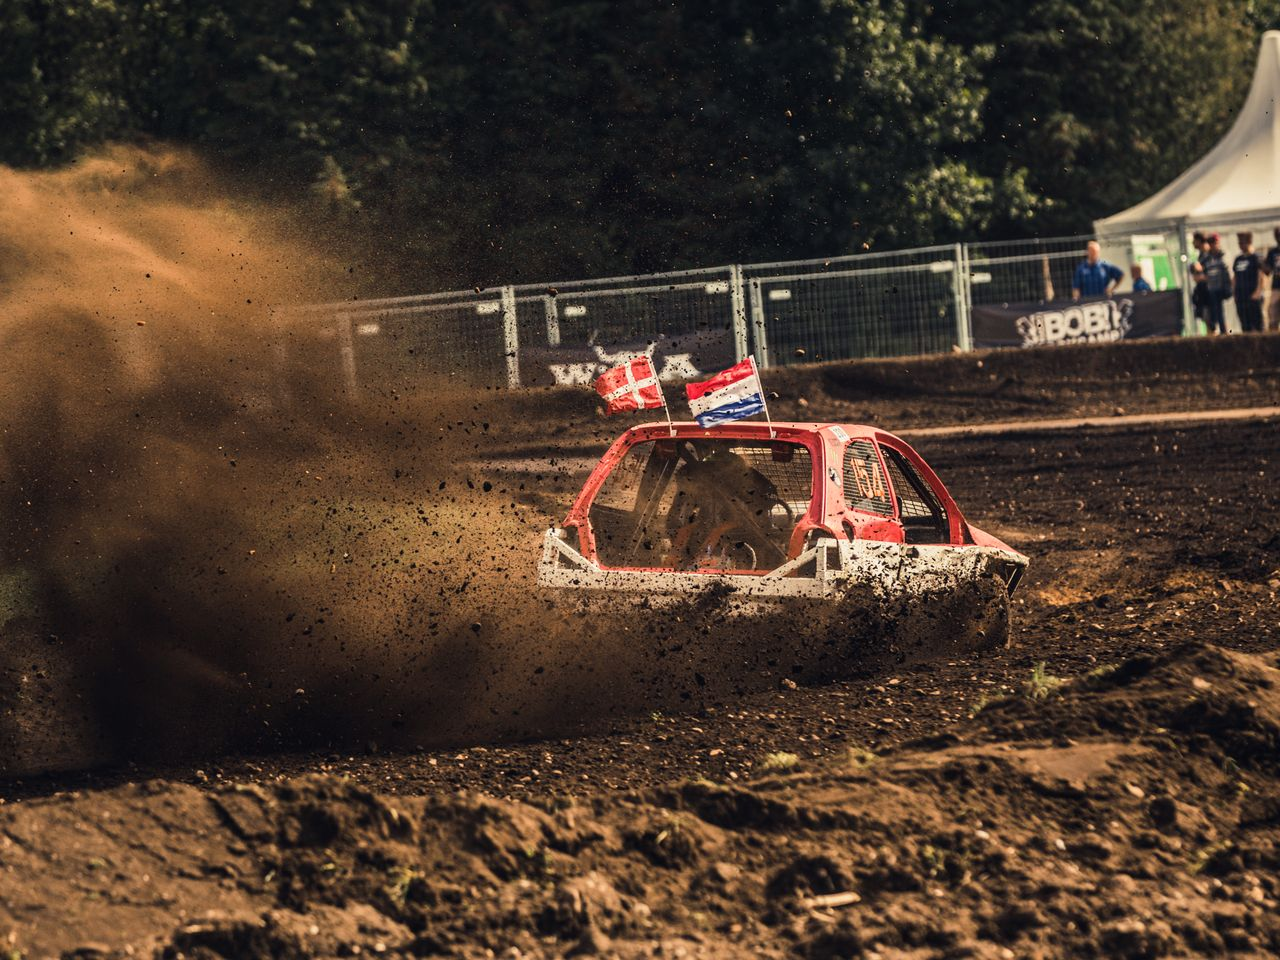 The race is held as part of Europe's biggest motorsport festival—on the grounds of the Hartenholm airfield in the German town of Hasenmoor in Schleswig-Holstein, roughly fifty kilometers north of Hamburg.